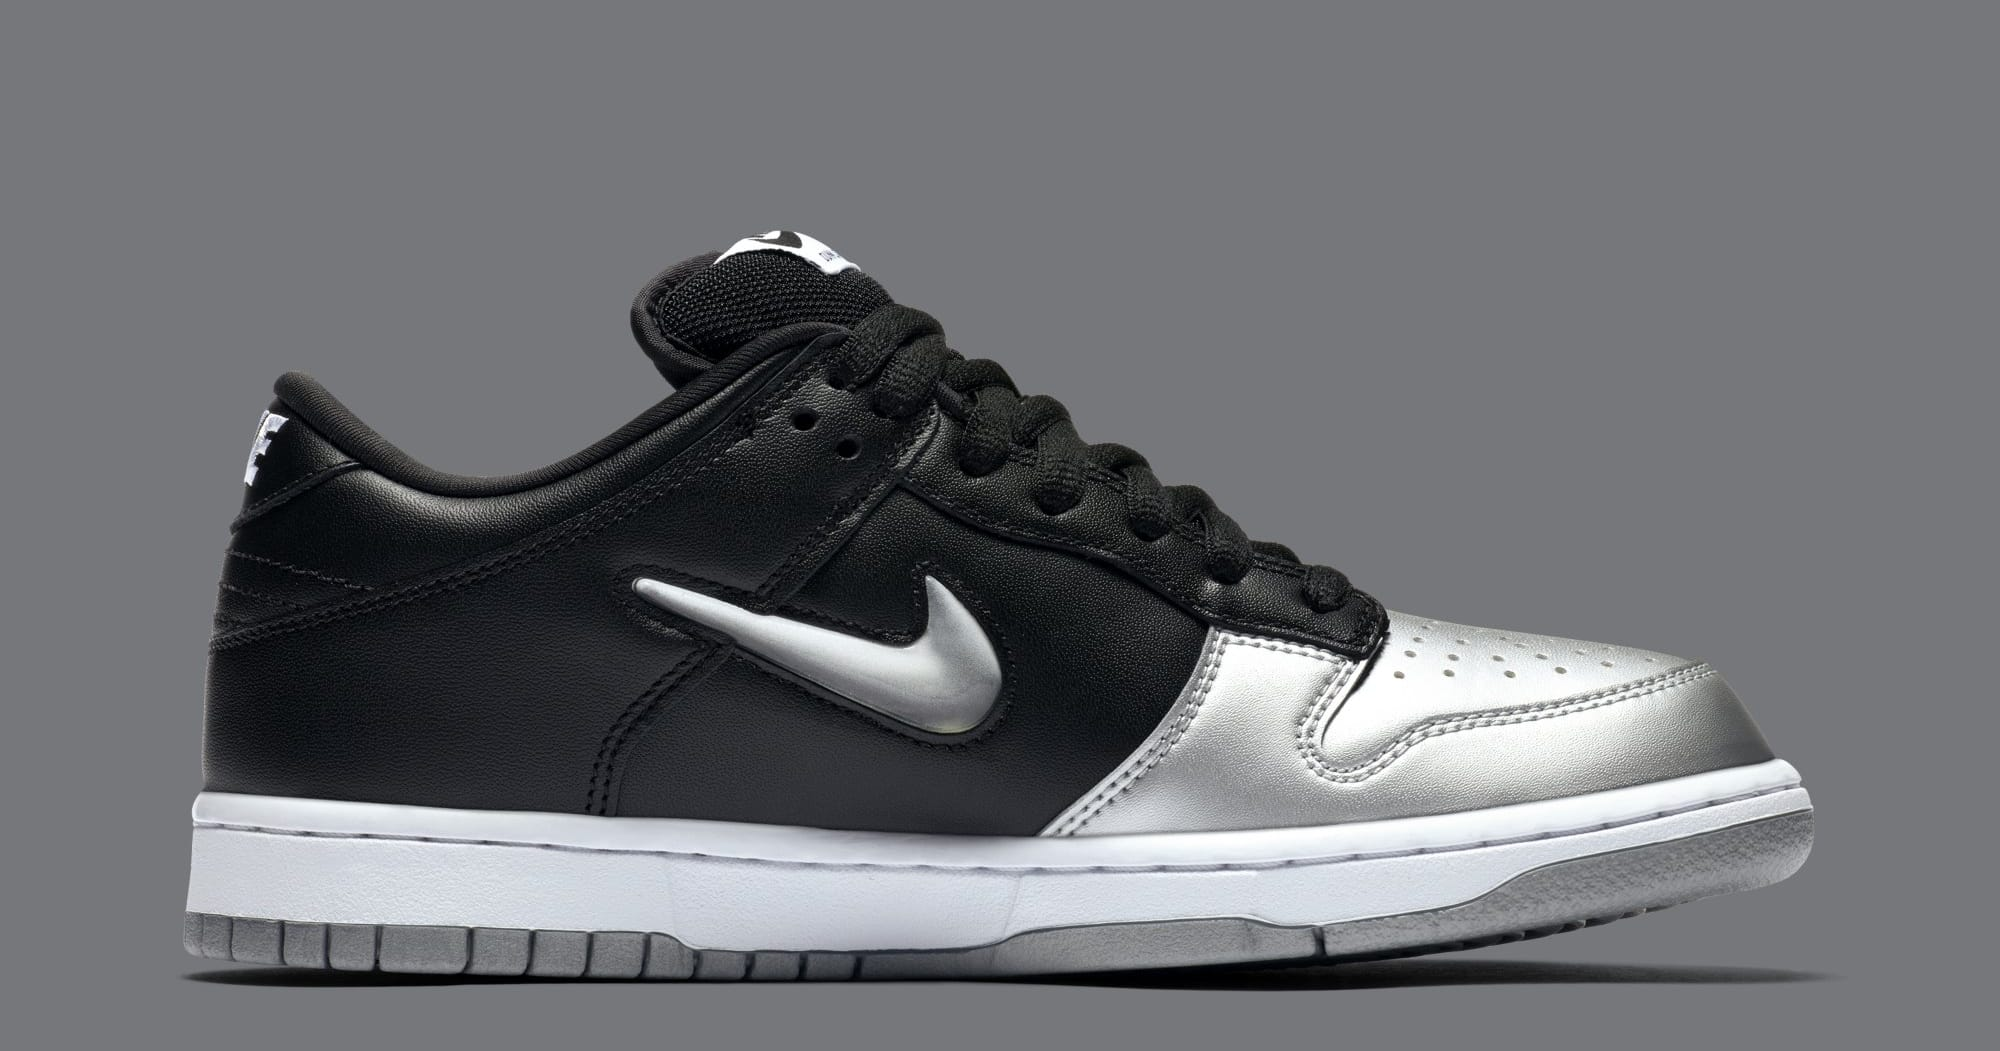 premium selection 1b645 07235 Supreme x Nike SB Dunk Low OG Release Date | Sole Collector